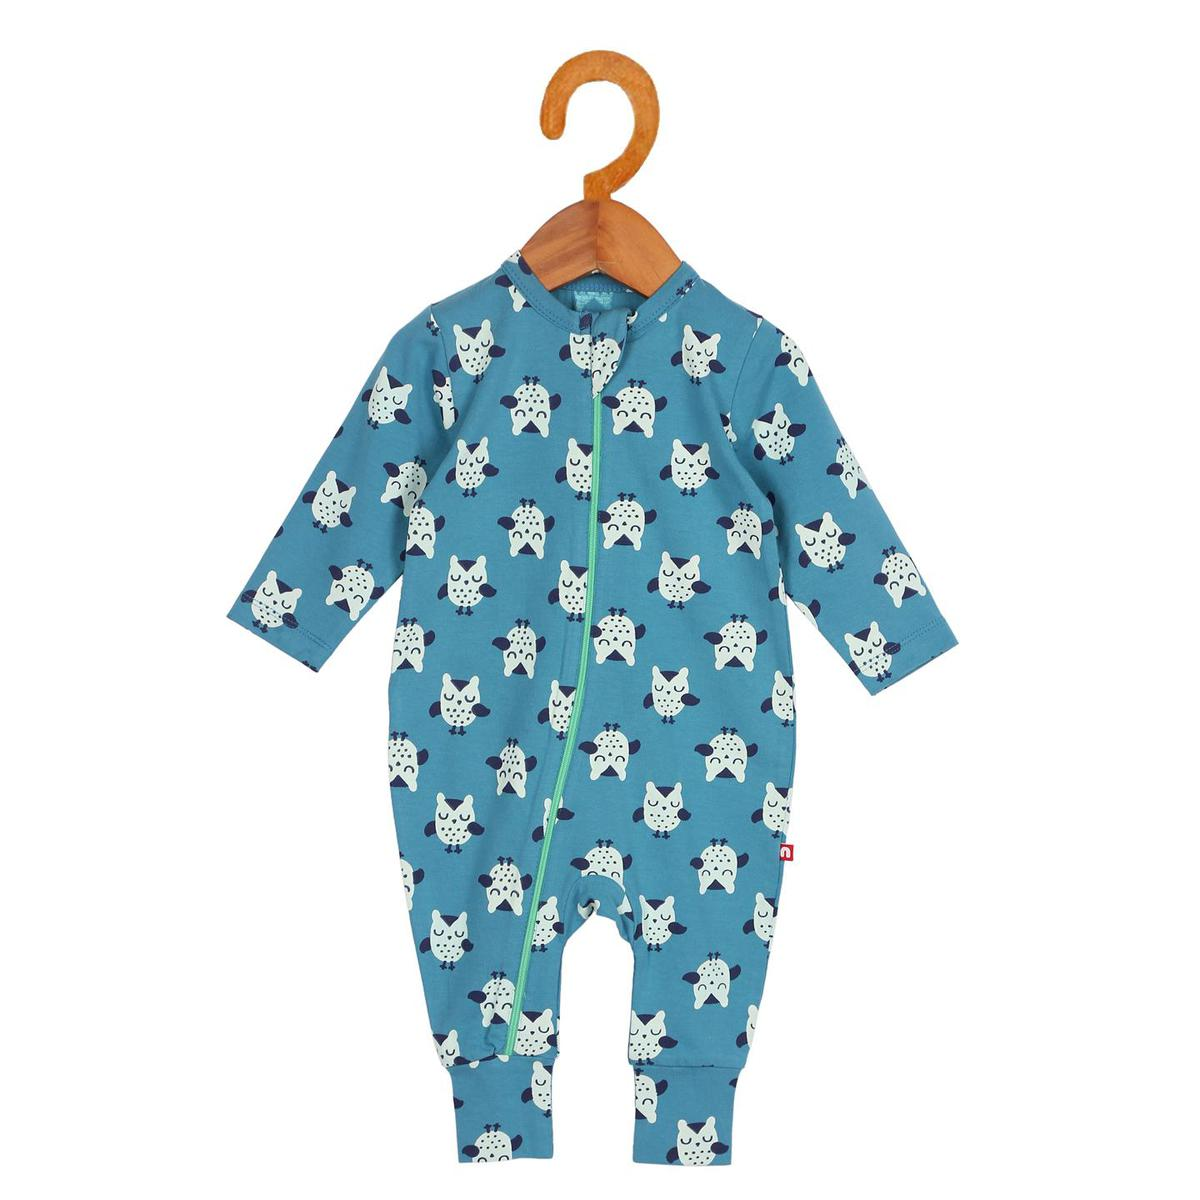 Nino Bambino - Blue Colored Casual Cotton Large Sleeve Zip Romper